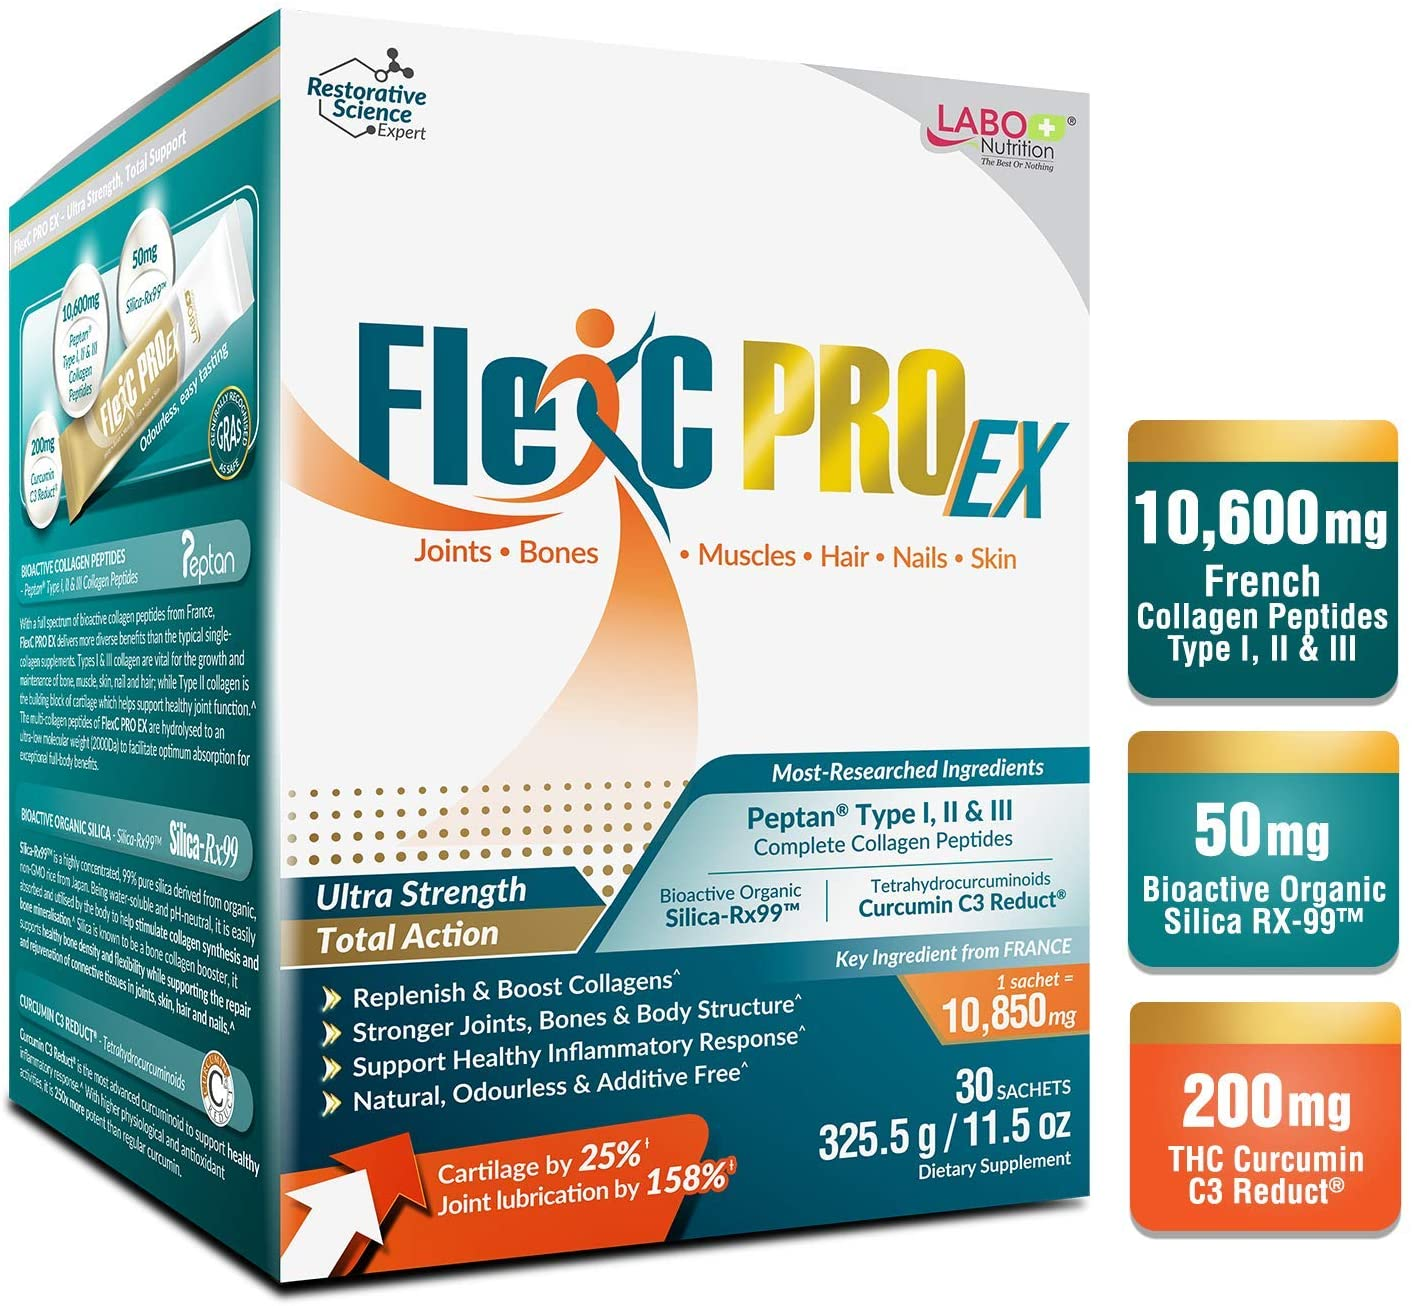 LABO Nutrition FlexC PRO EX with Peptan Type I, II & III Collagen Peptide, Organic Water Soluble Silica and Curcumin C3 Reduct, for Joint, Bones, Muscles, Nails, Skin Health, Unflavored, No Additives